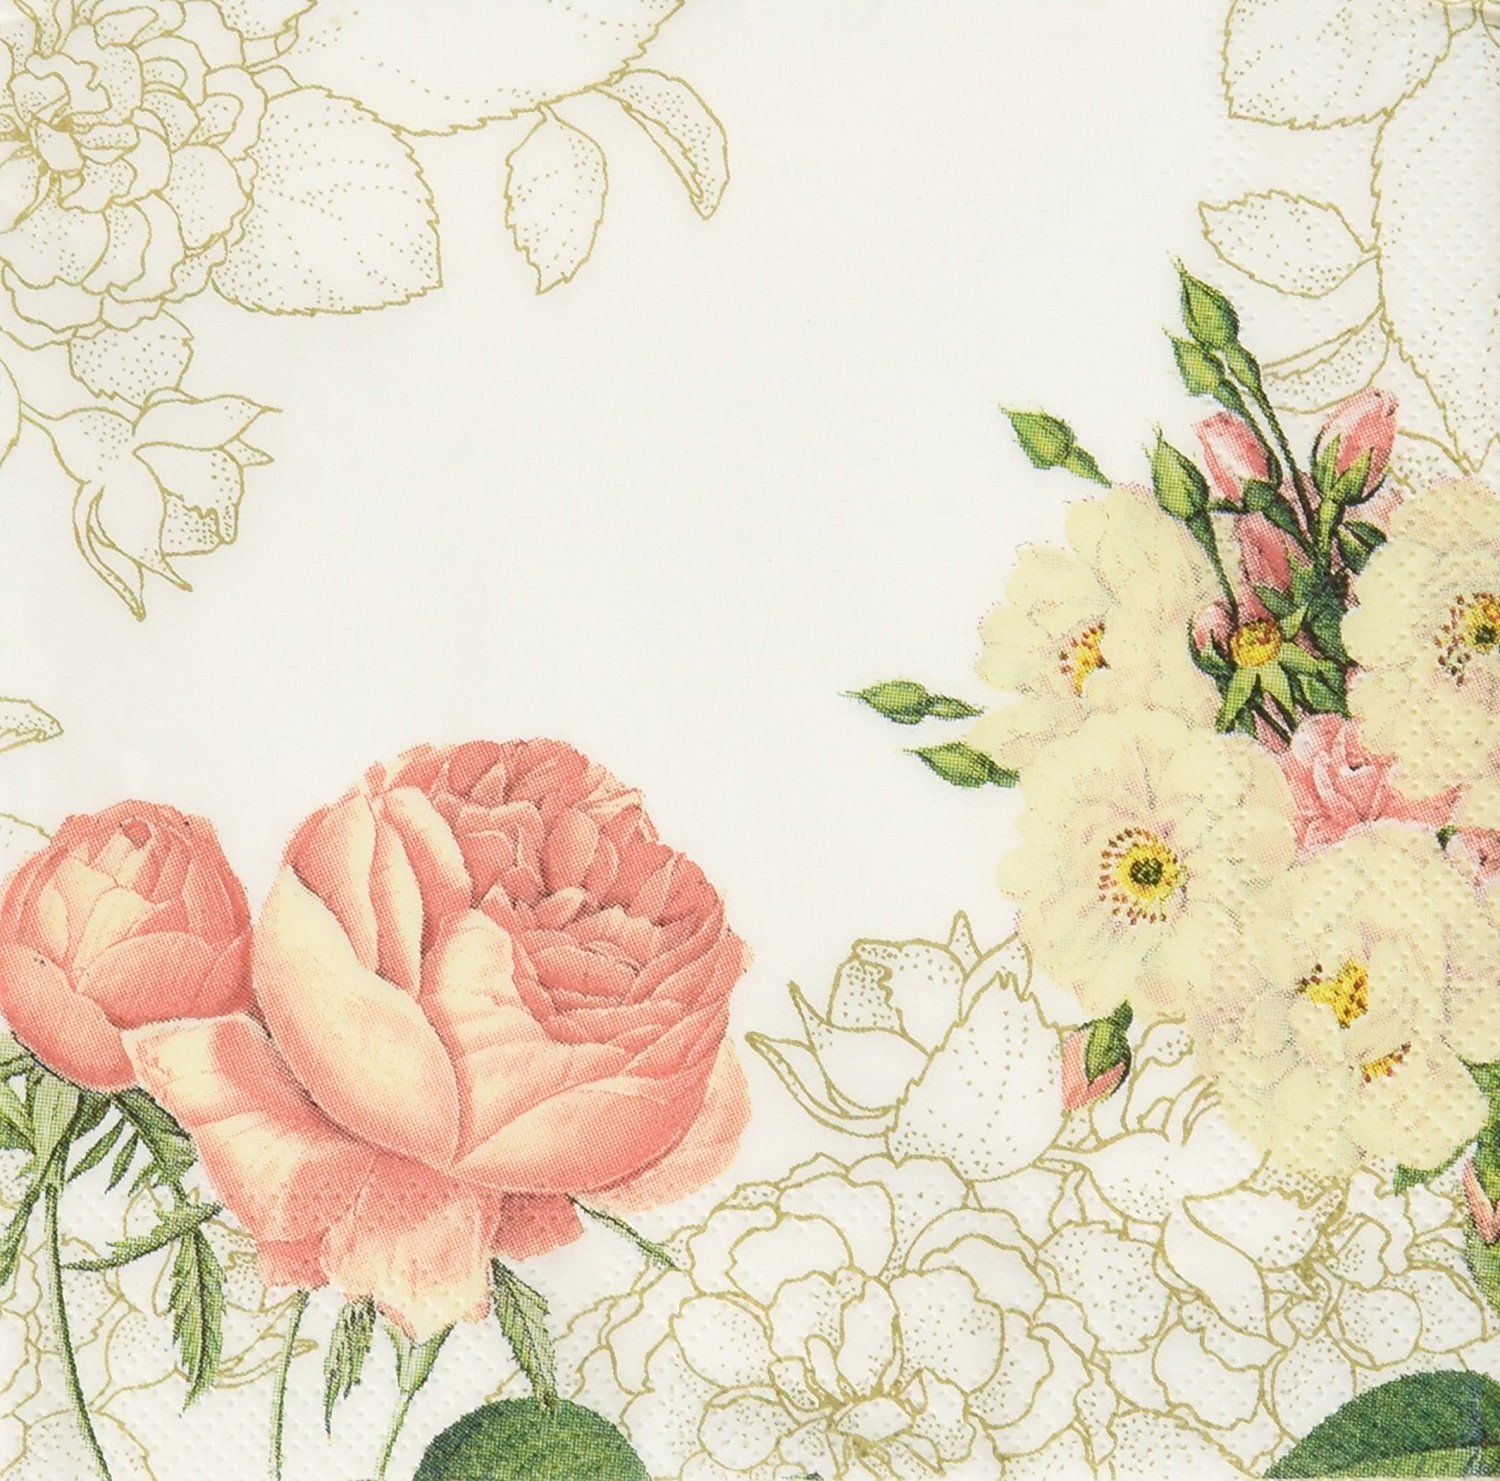 Talking Tables Blossom & Brogues Floral Paper Napkins for a Wedding or Tea Party, Multicolor (40 Pack) by Talking Tables